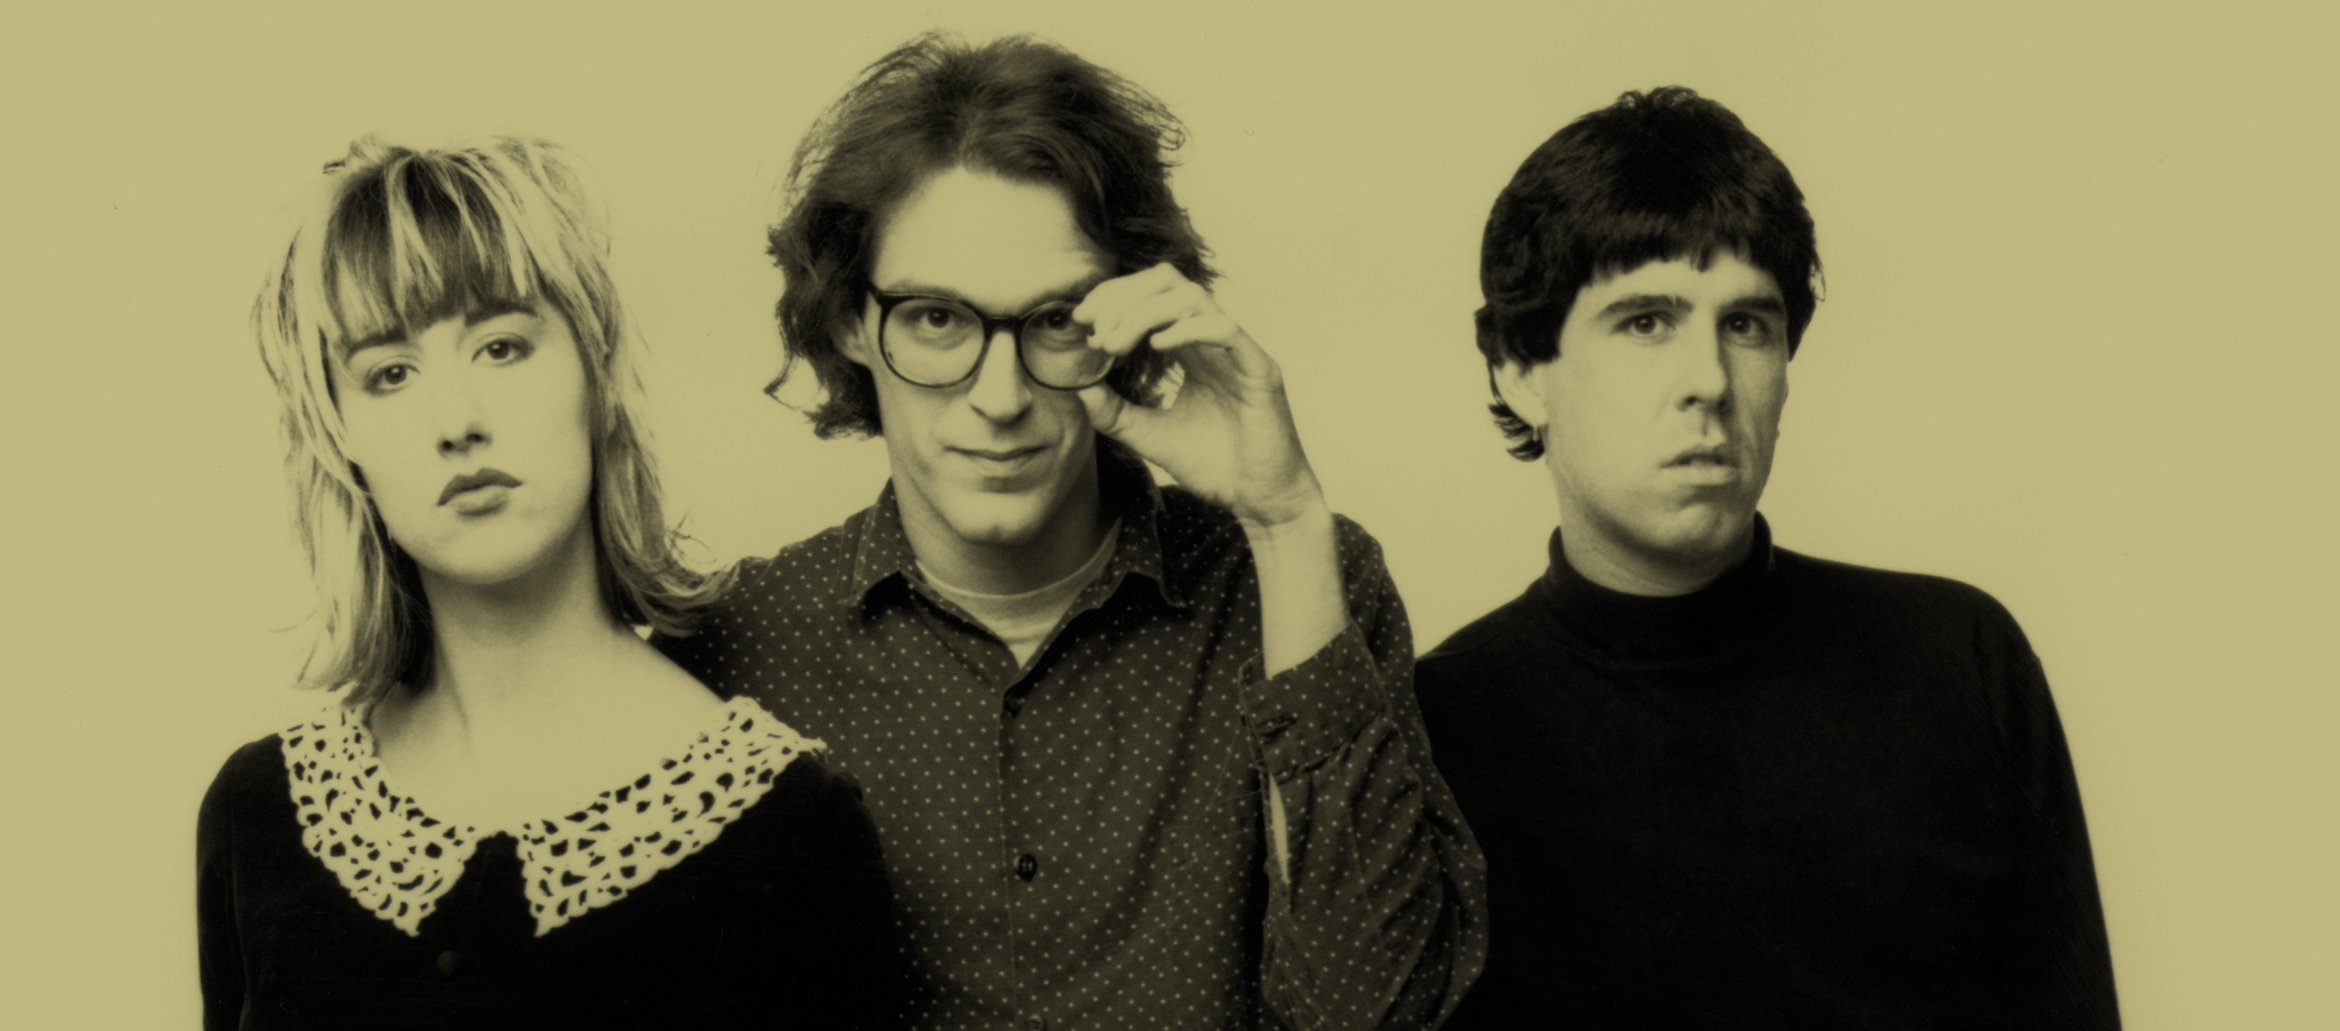 The Muffs - Artist Image